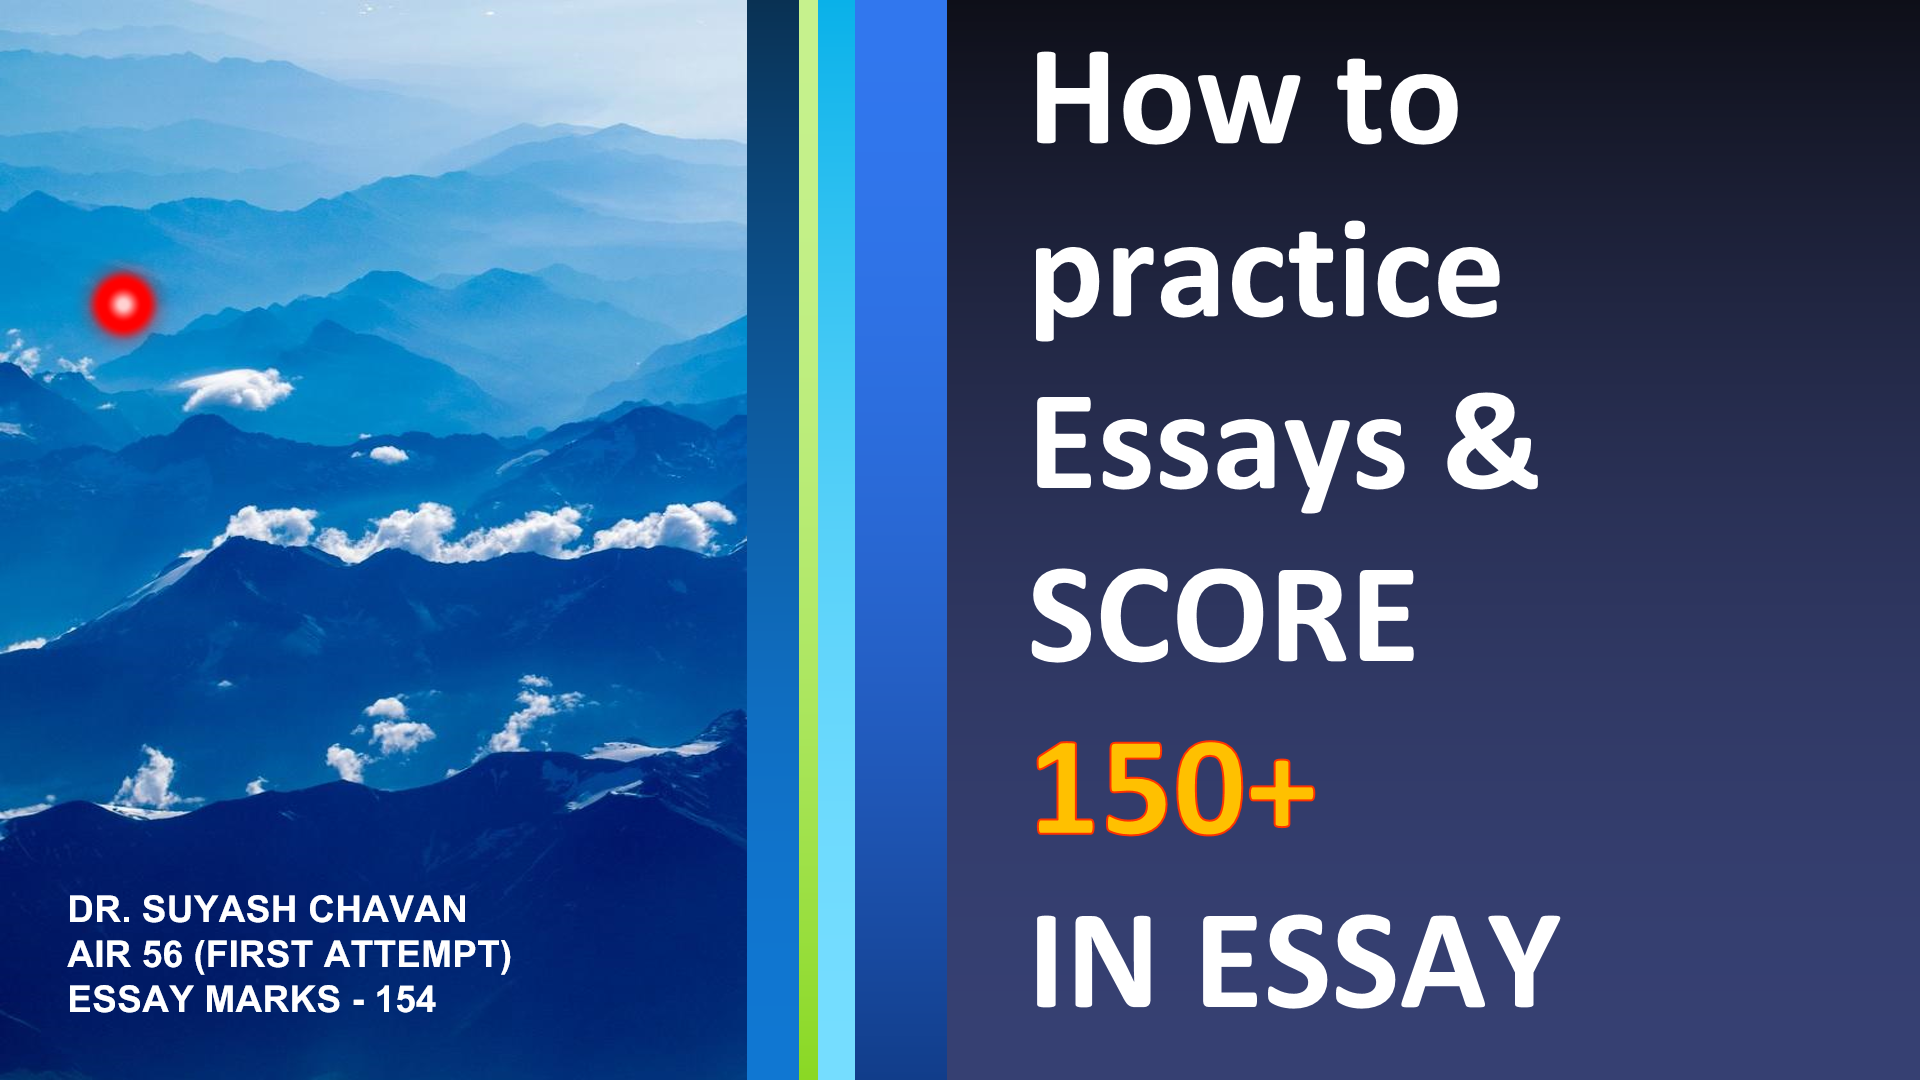 How To Prepare For The Ias Mains Essay Paper  Quora These Are Some Of The Slides From My Ytube Video On Essay Preparation You  Can Check The Video On My Channel If You Have Time Or Just Read The Answer  Below English Essay Internet also Essay On Health Care Reform  Personal Essay Thesis Statement